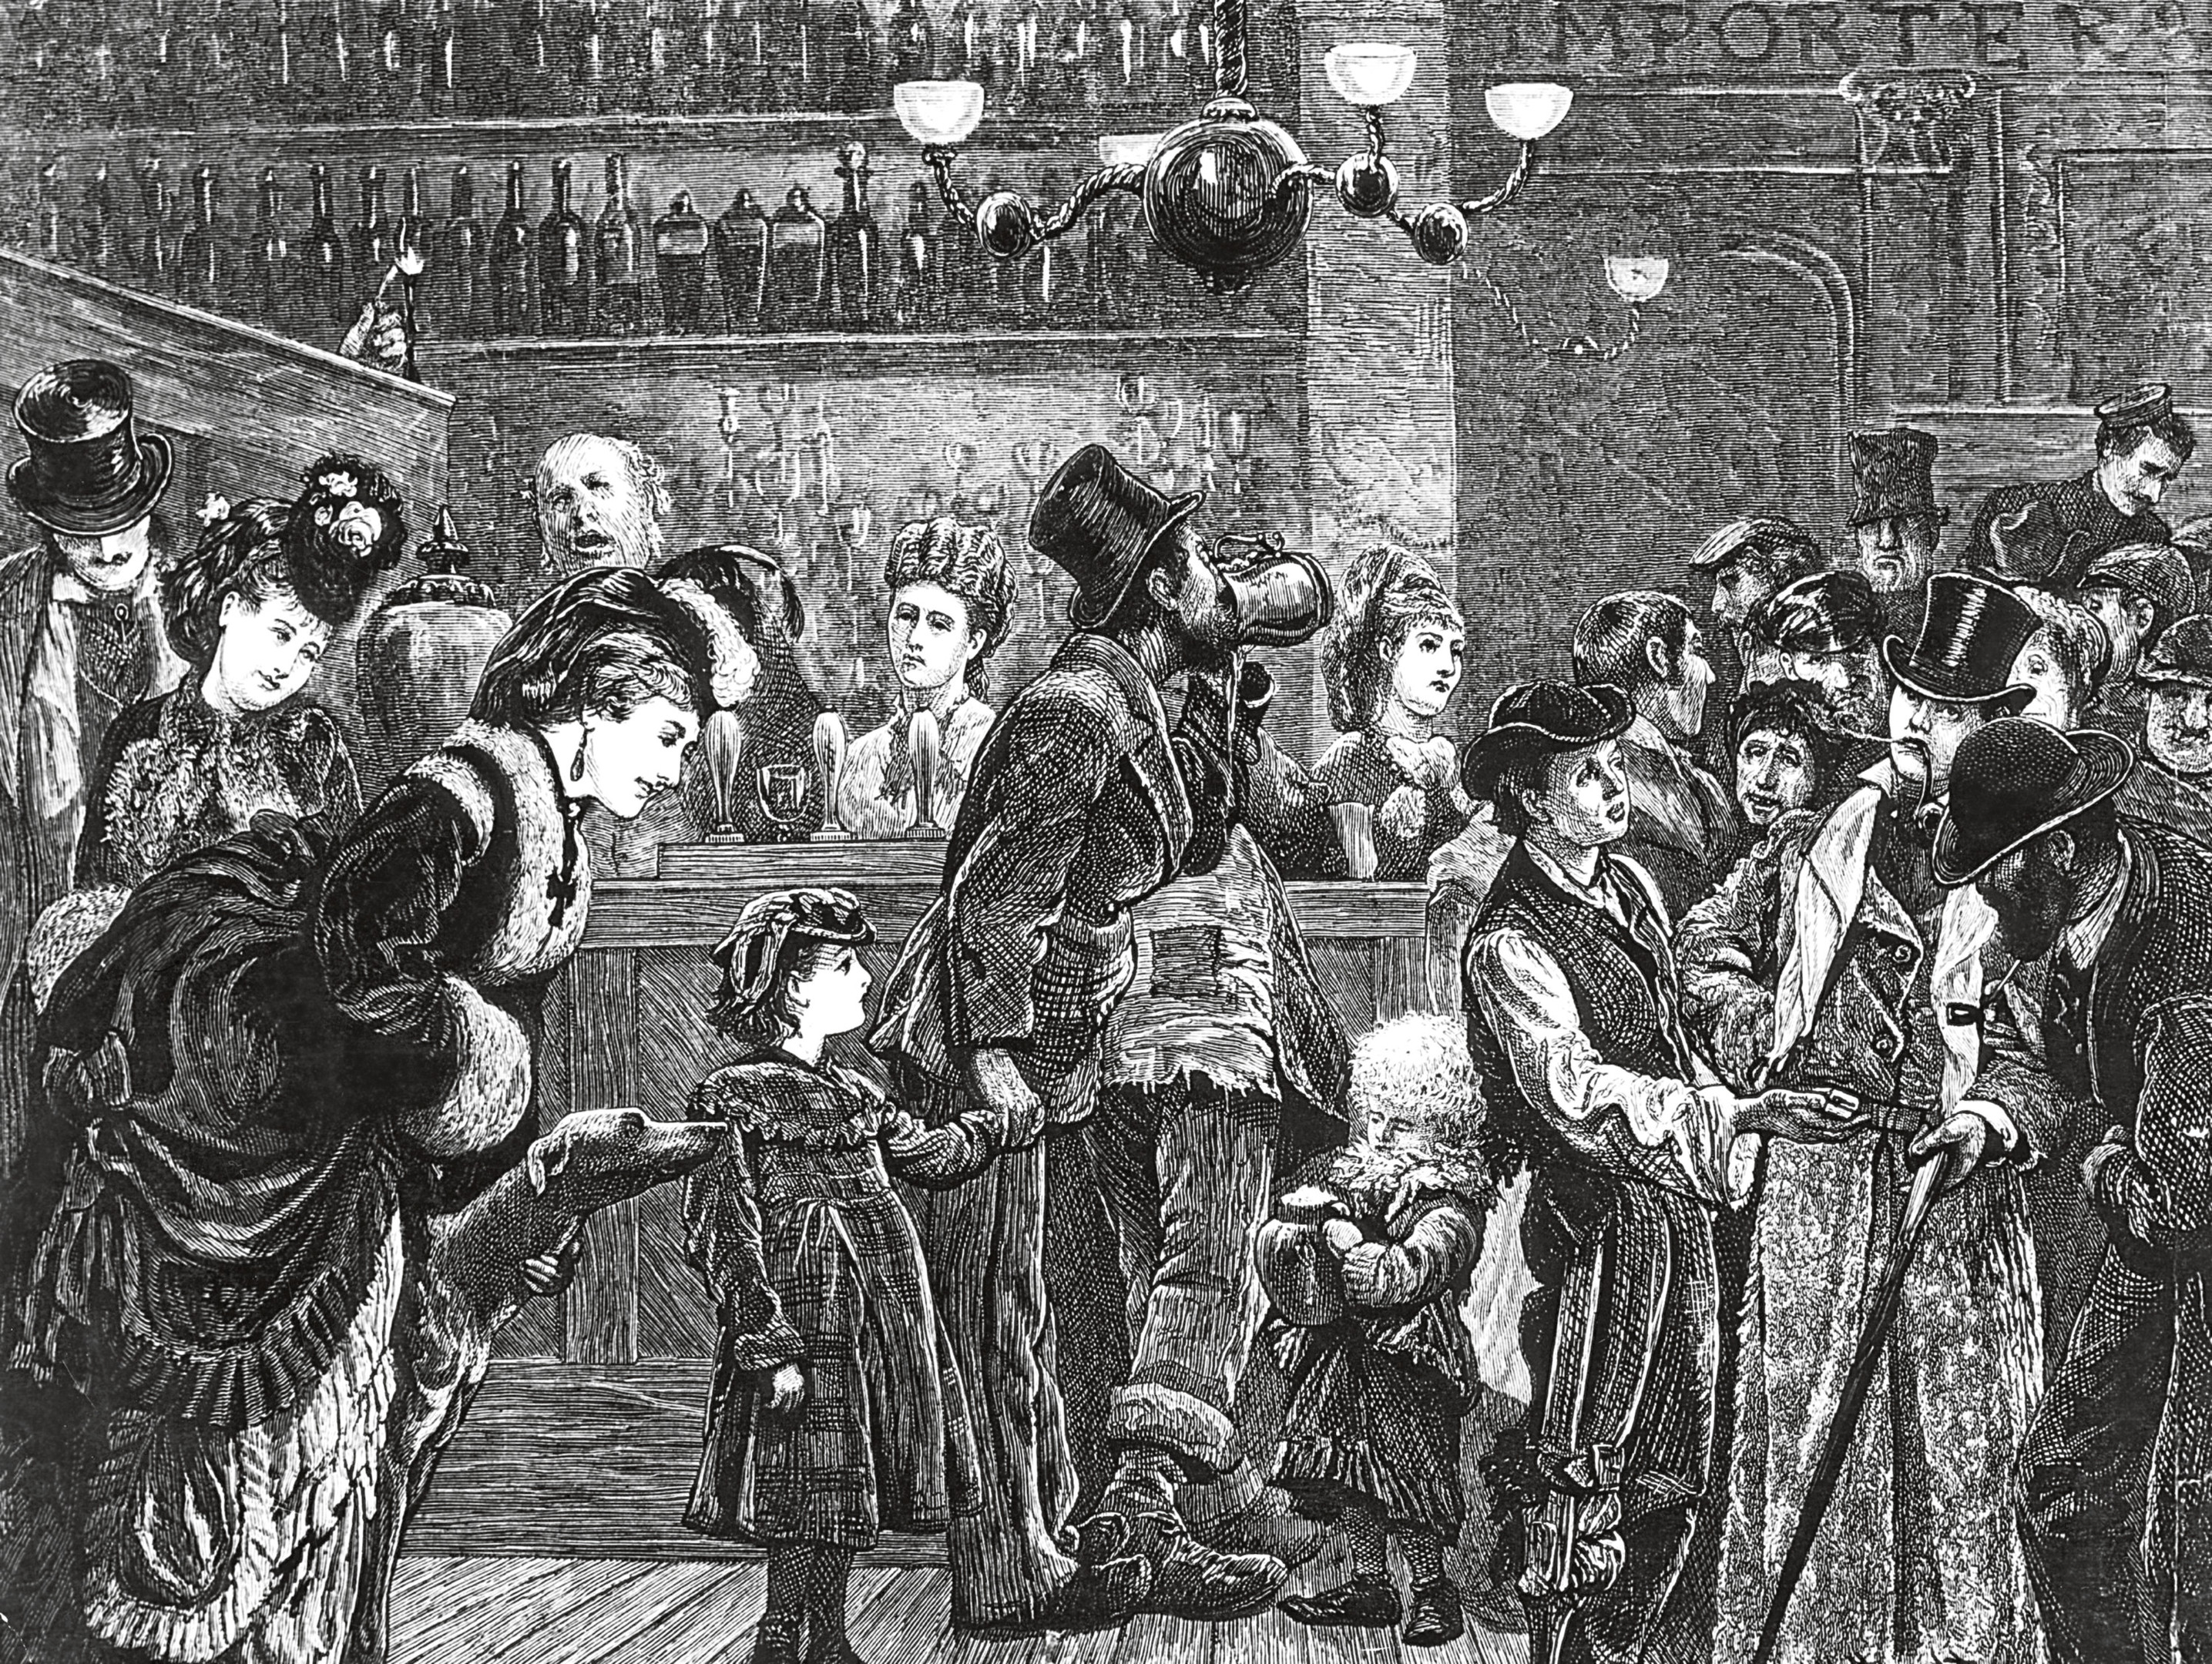 Customers and staff in a London pub, circa 1870. (Photo by Hulton Archive/Getty Images)